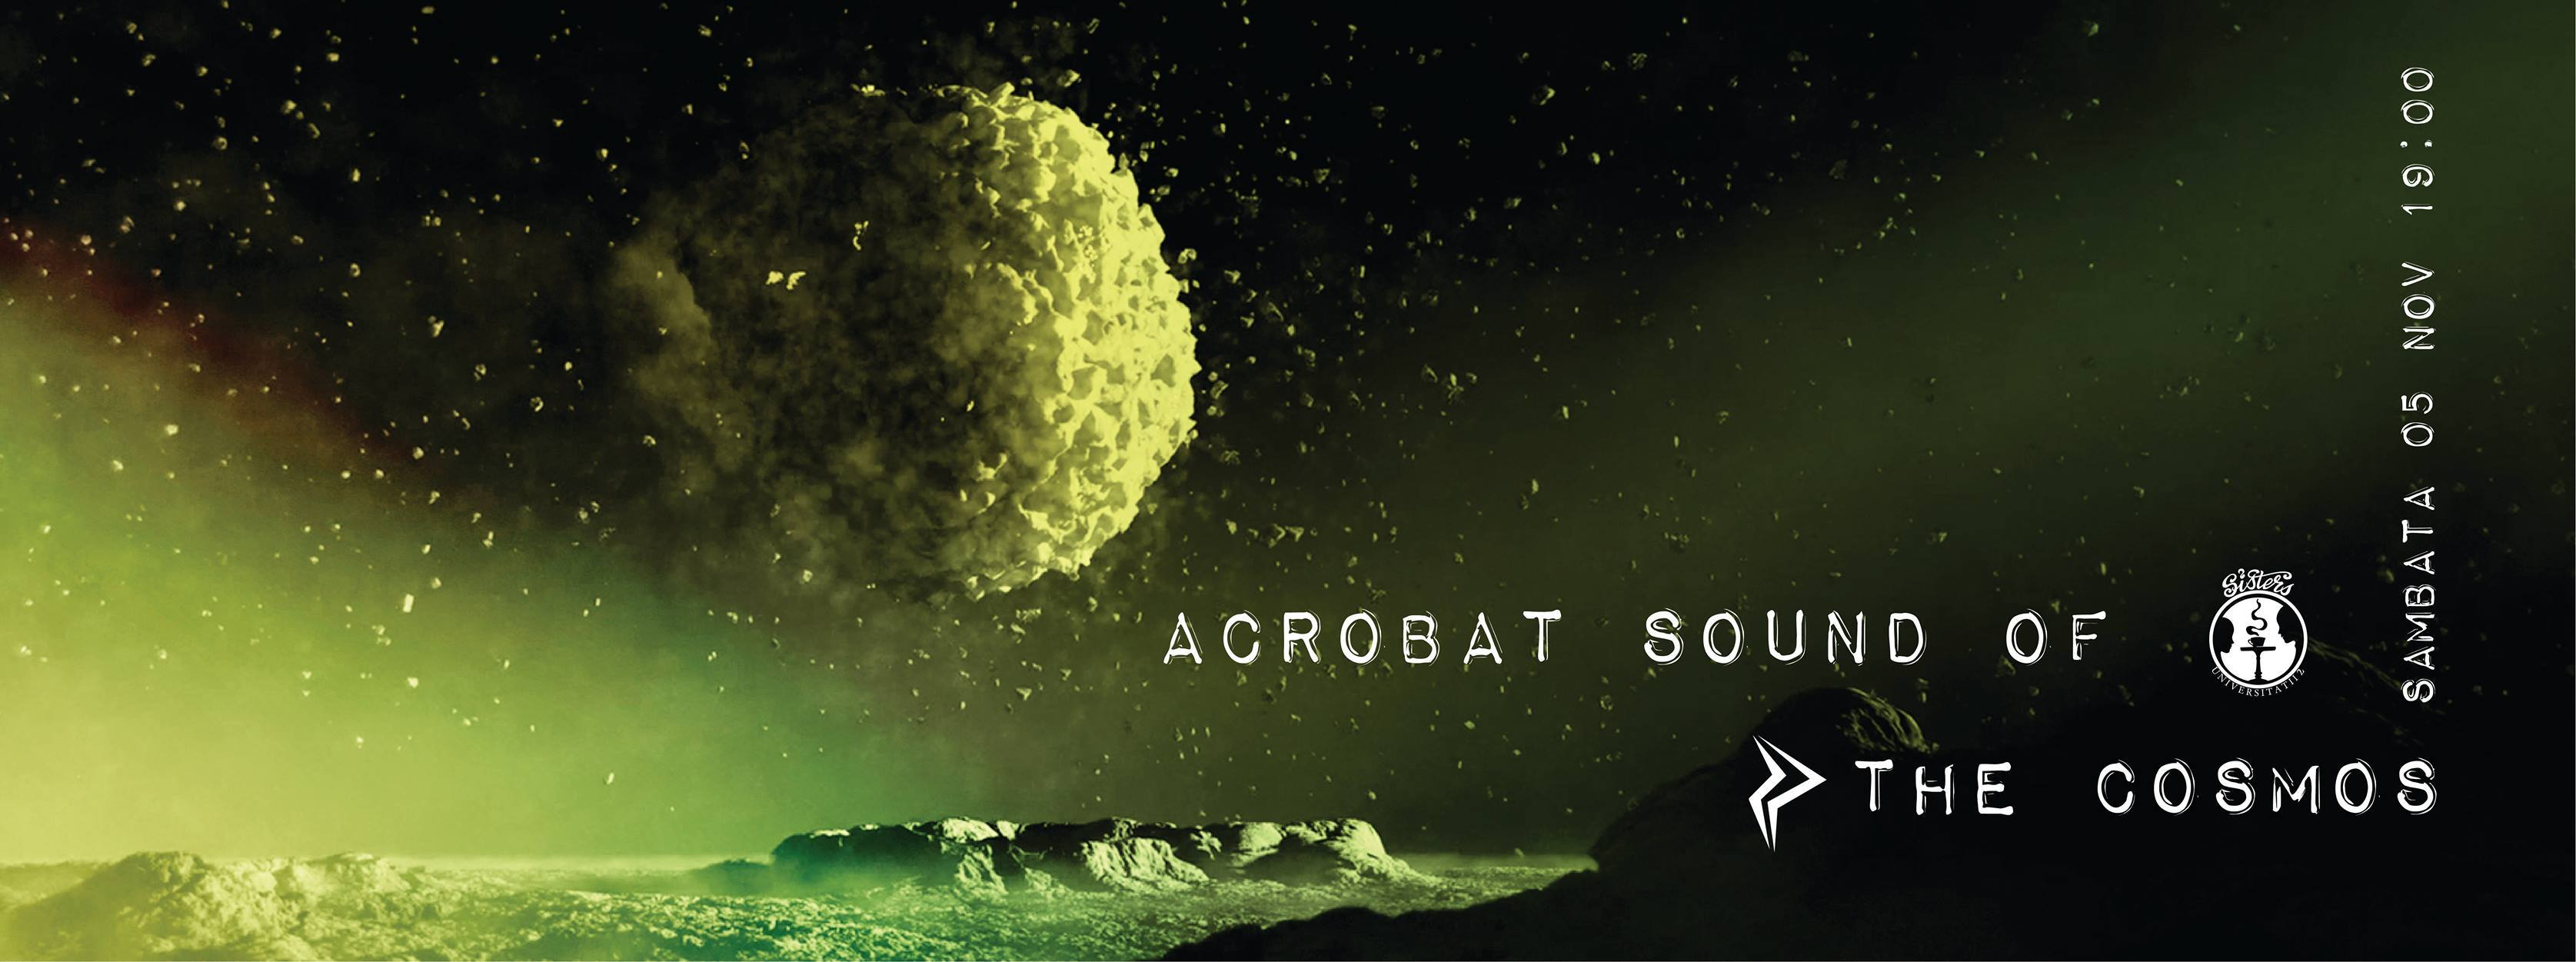 Acrobat Sound of the Cosmos @ Sisters